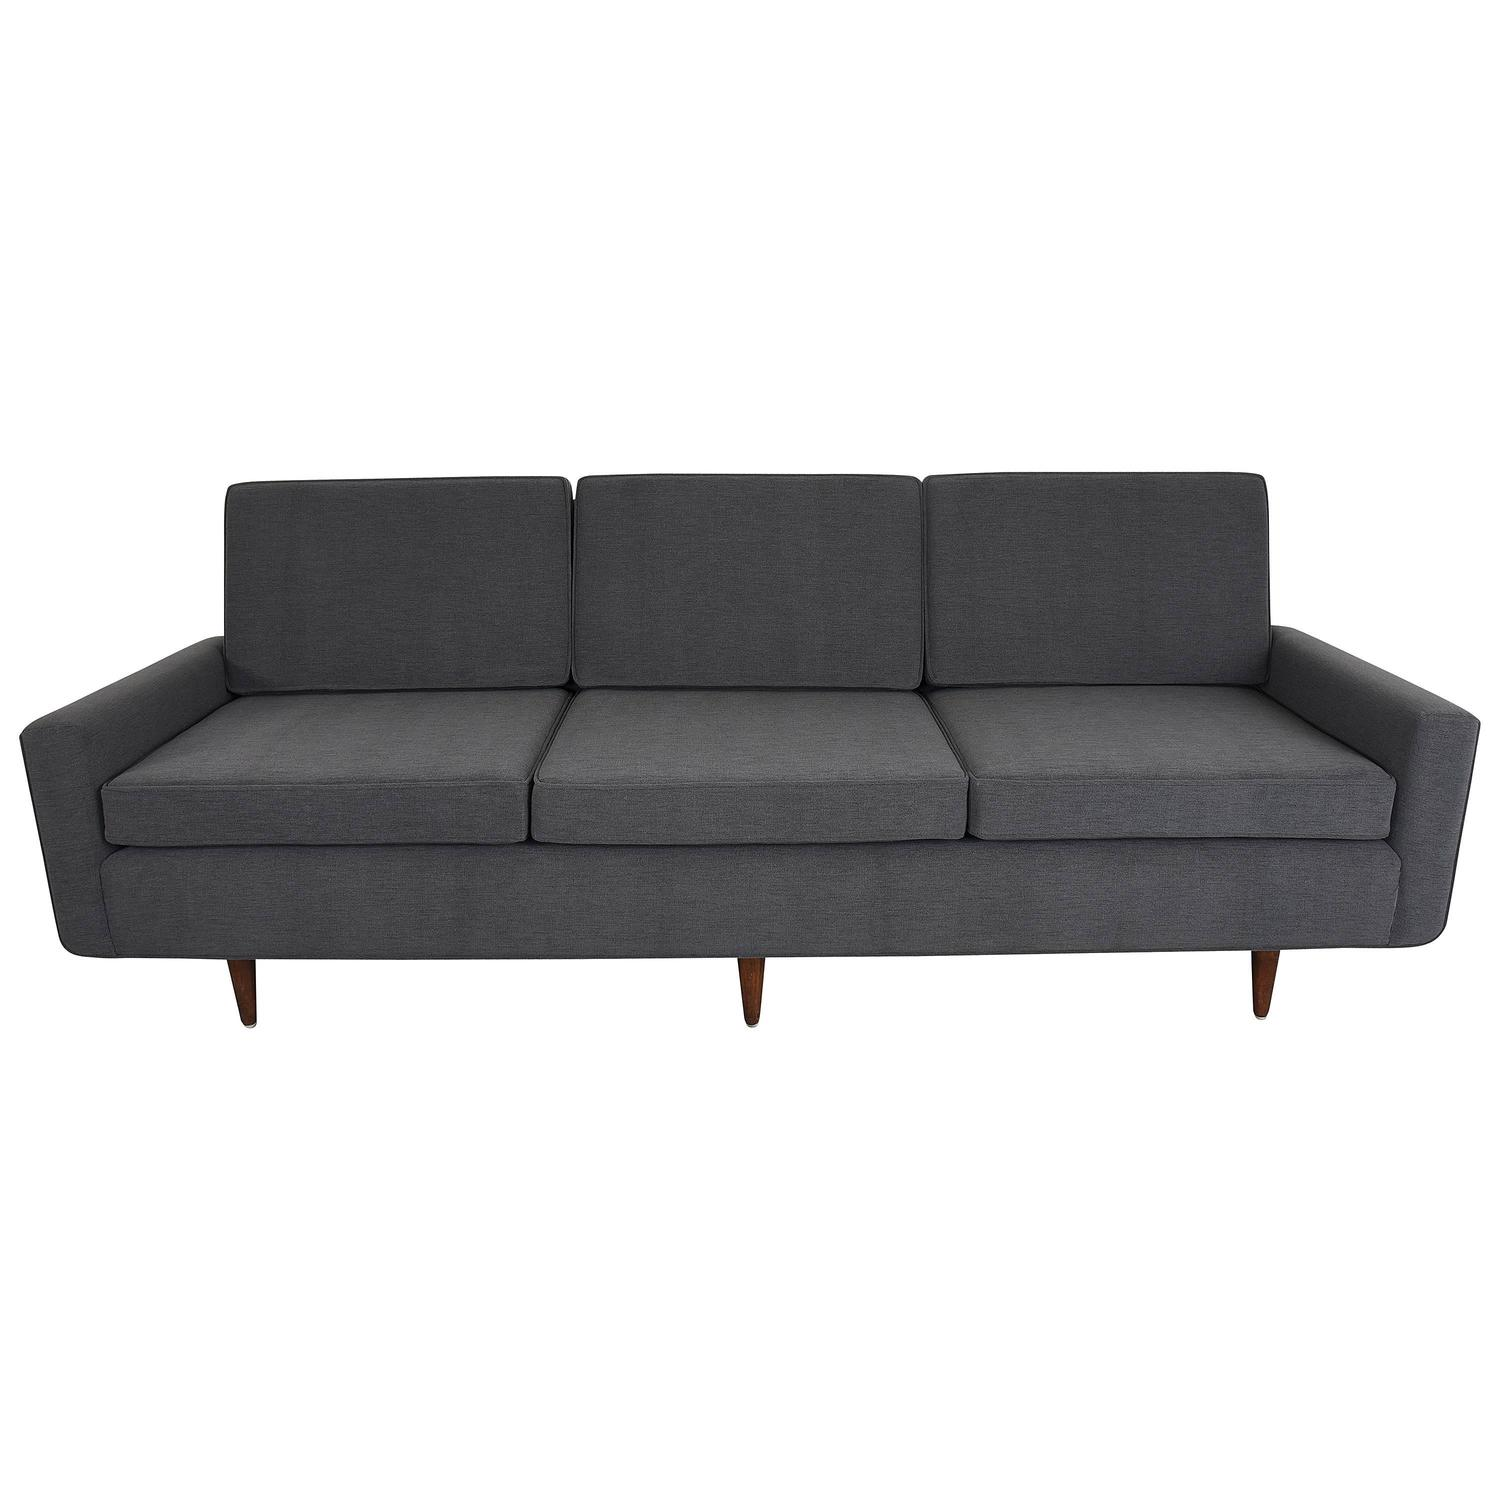 florence knoll sofa three seat sofa model 26 pair. Black Bedroom Furniture Sets. Home Design Ideas